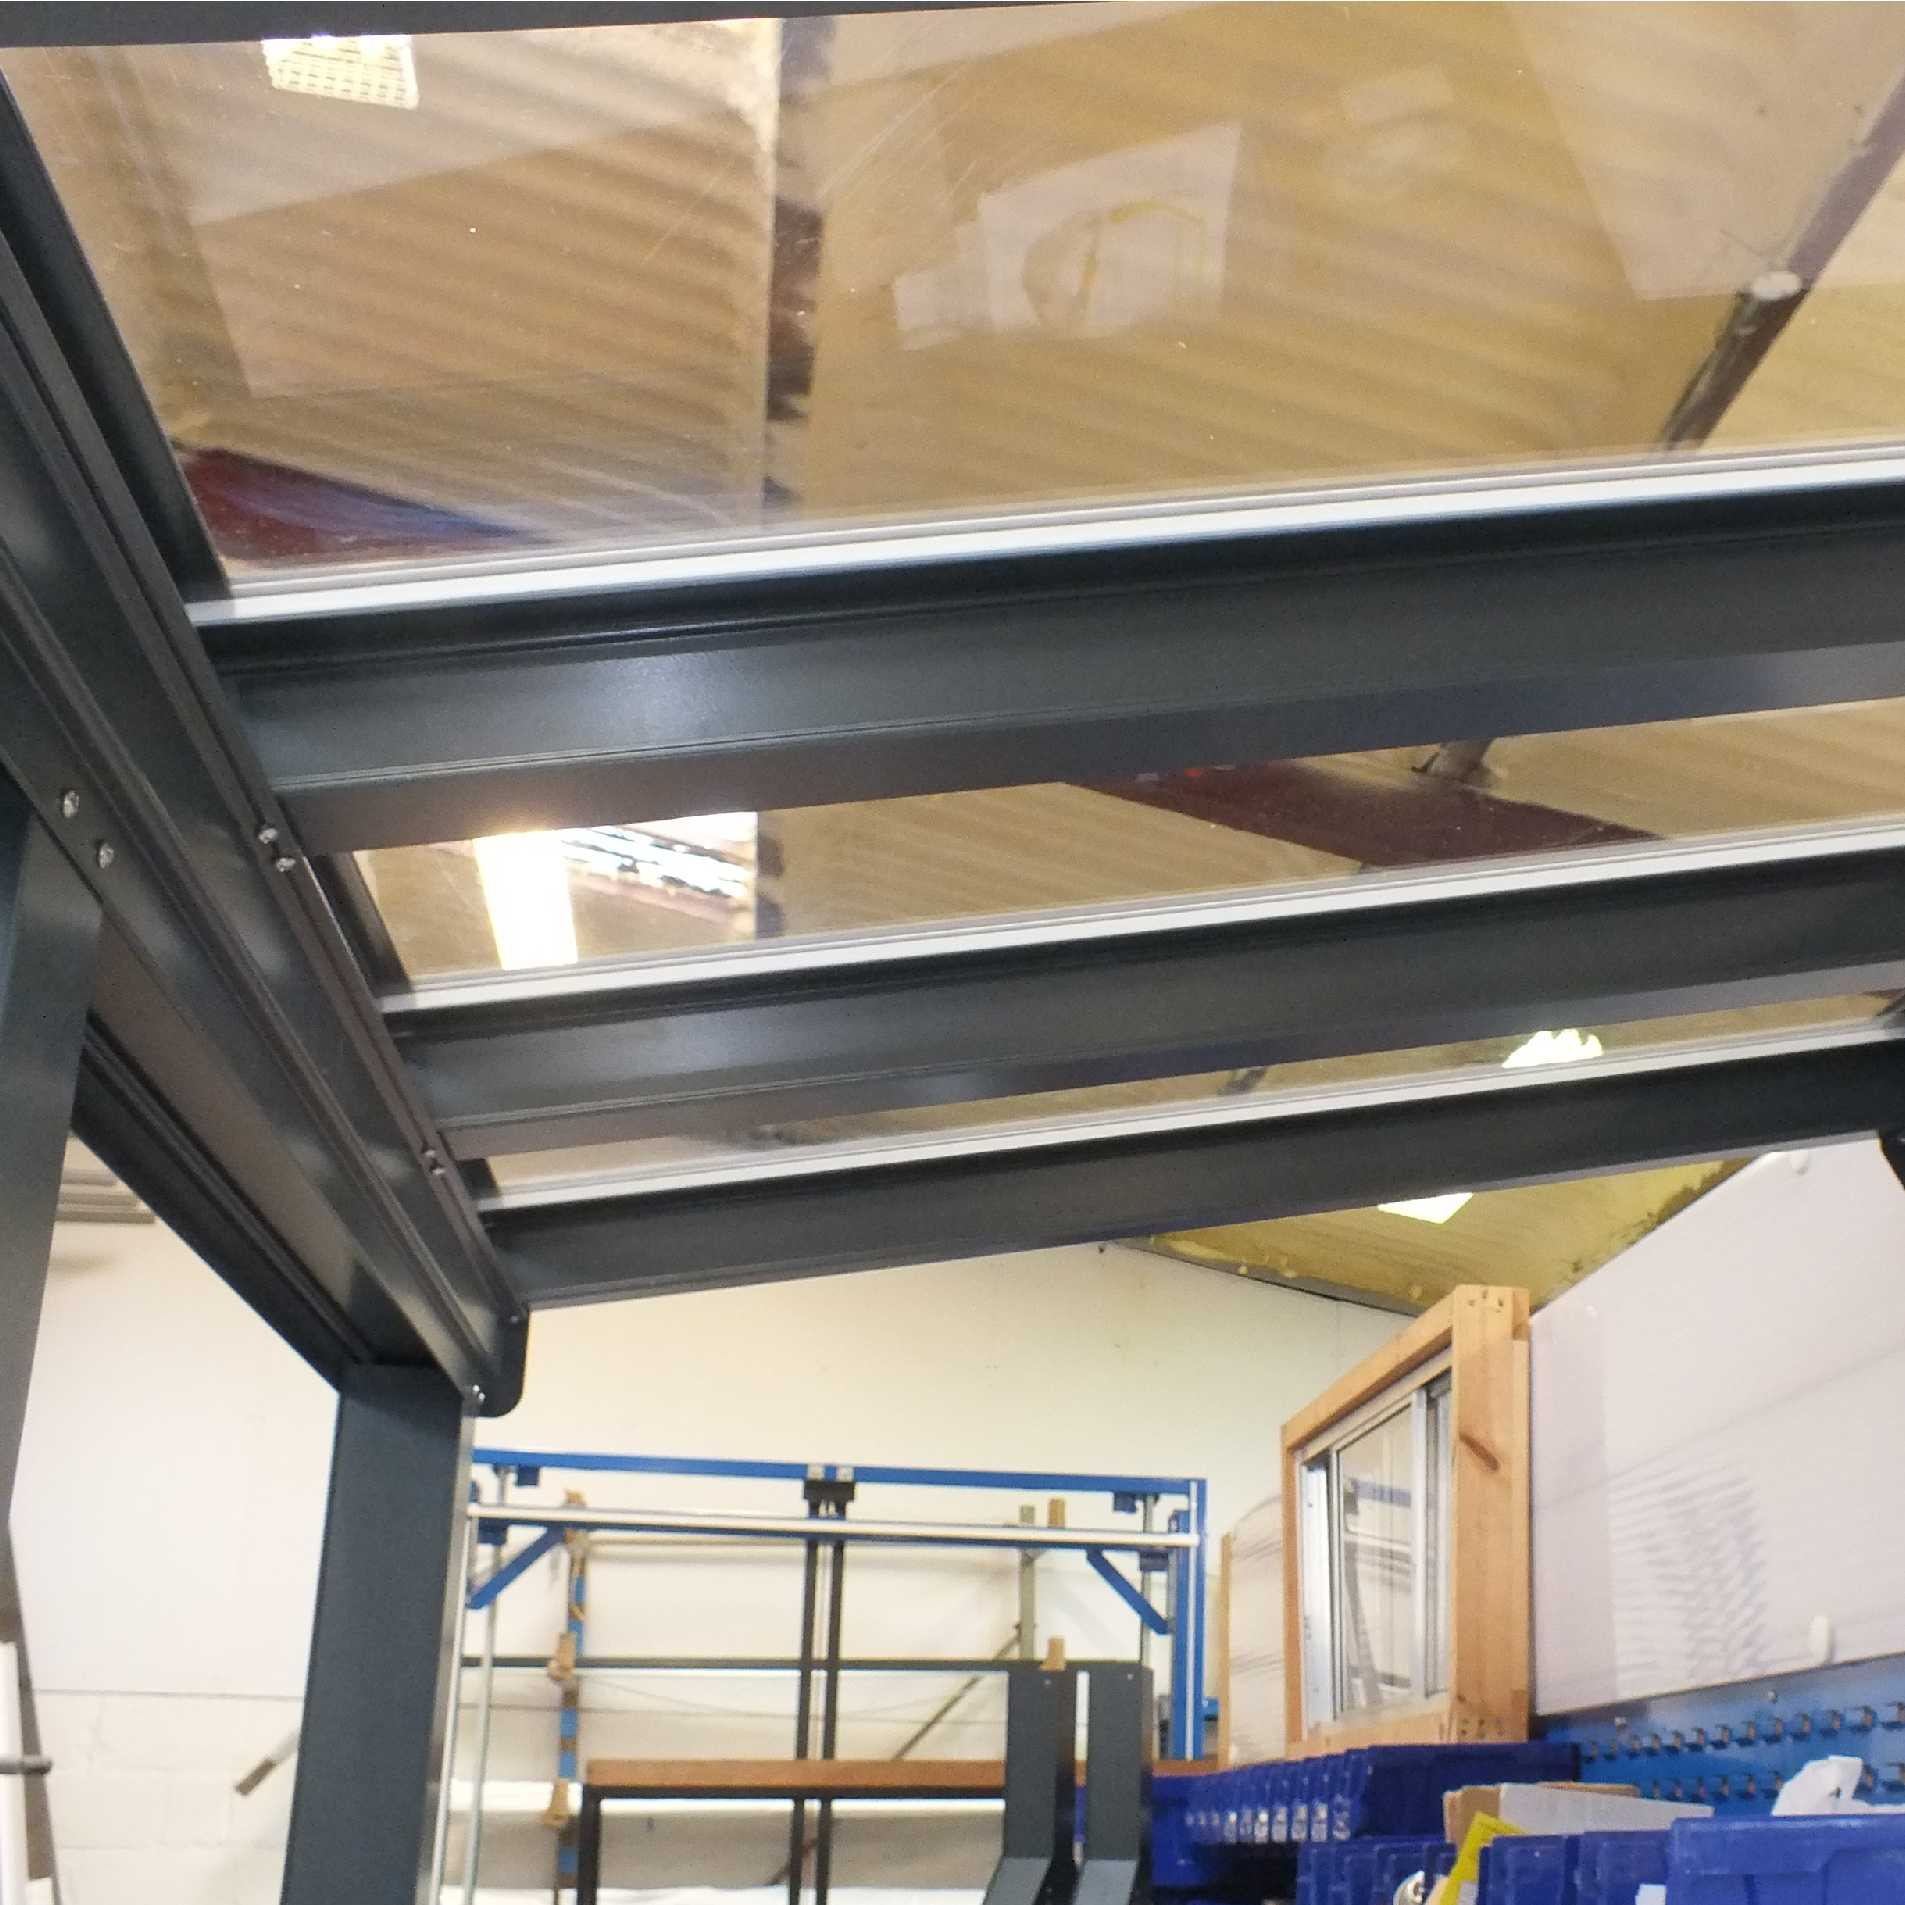 Great deals on Omega Smart Lean-To Canopy, Anthracite Grey, 6mm Glass Clear Plate Polycarbonate Glazing - 7.7m (W) x 1.5m (P), (4) Supporting Posts